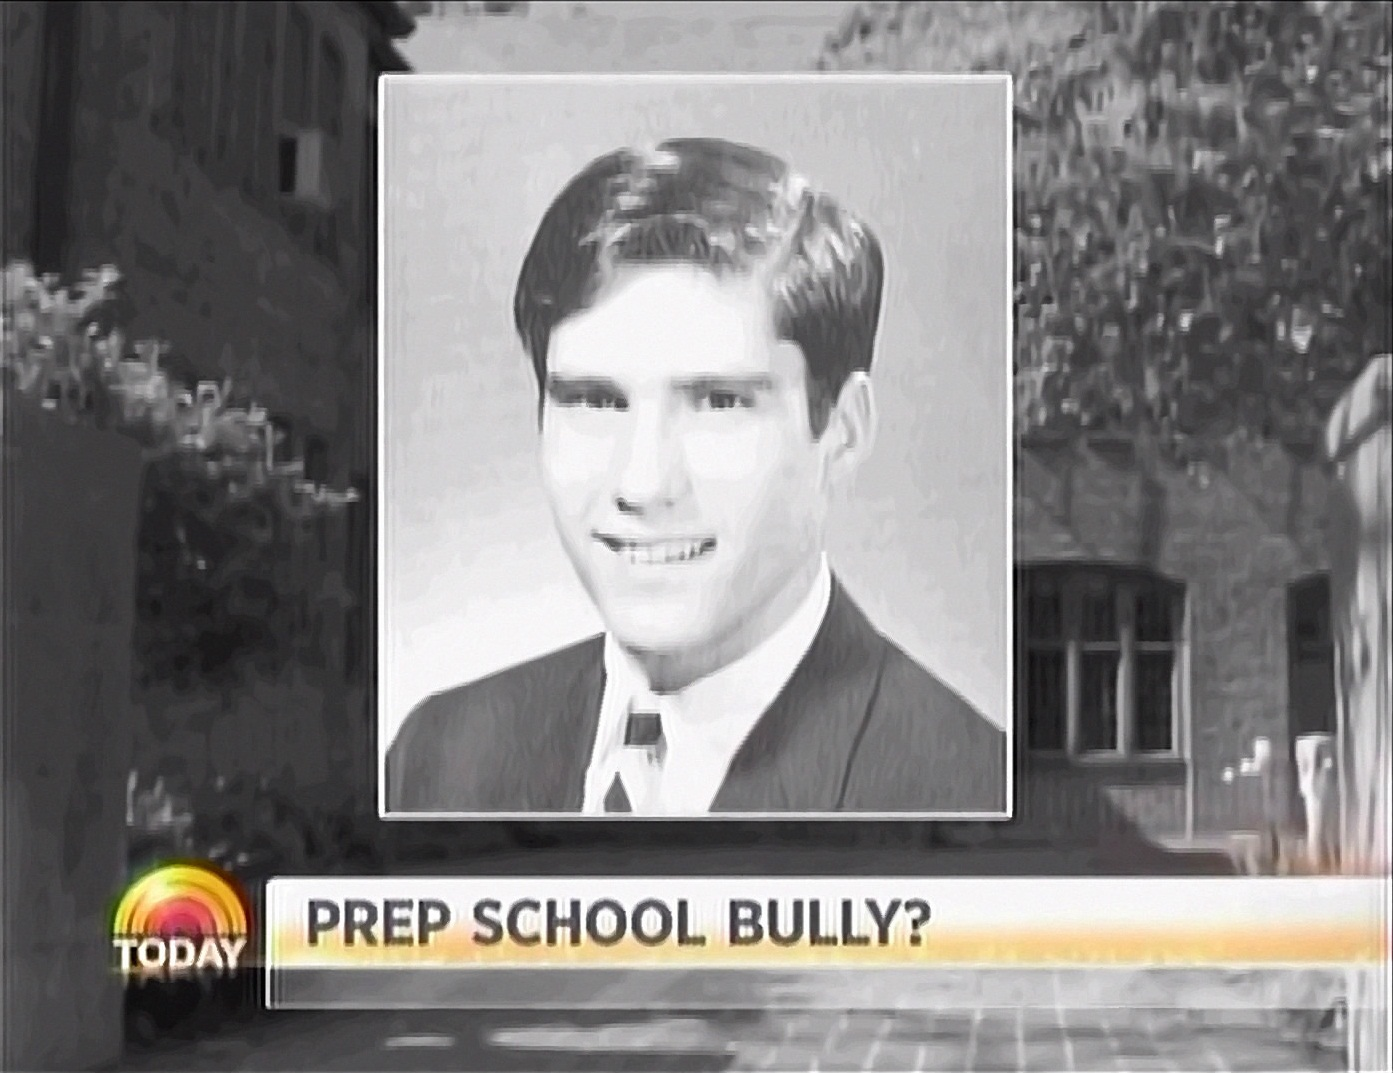 nbc reports romney bully story labeled  u0026 39 factually